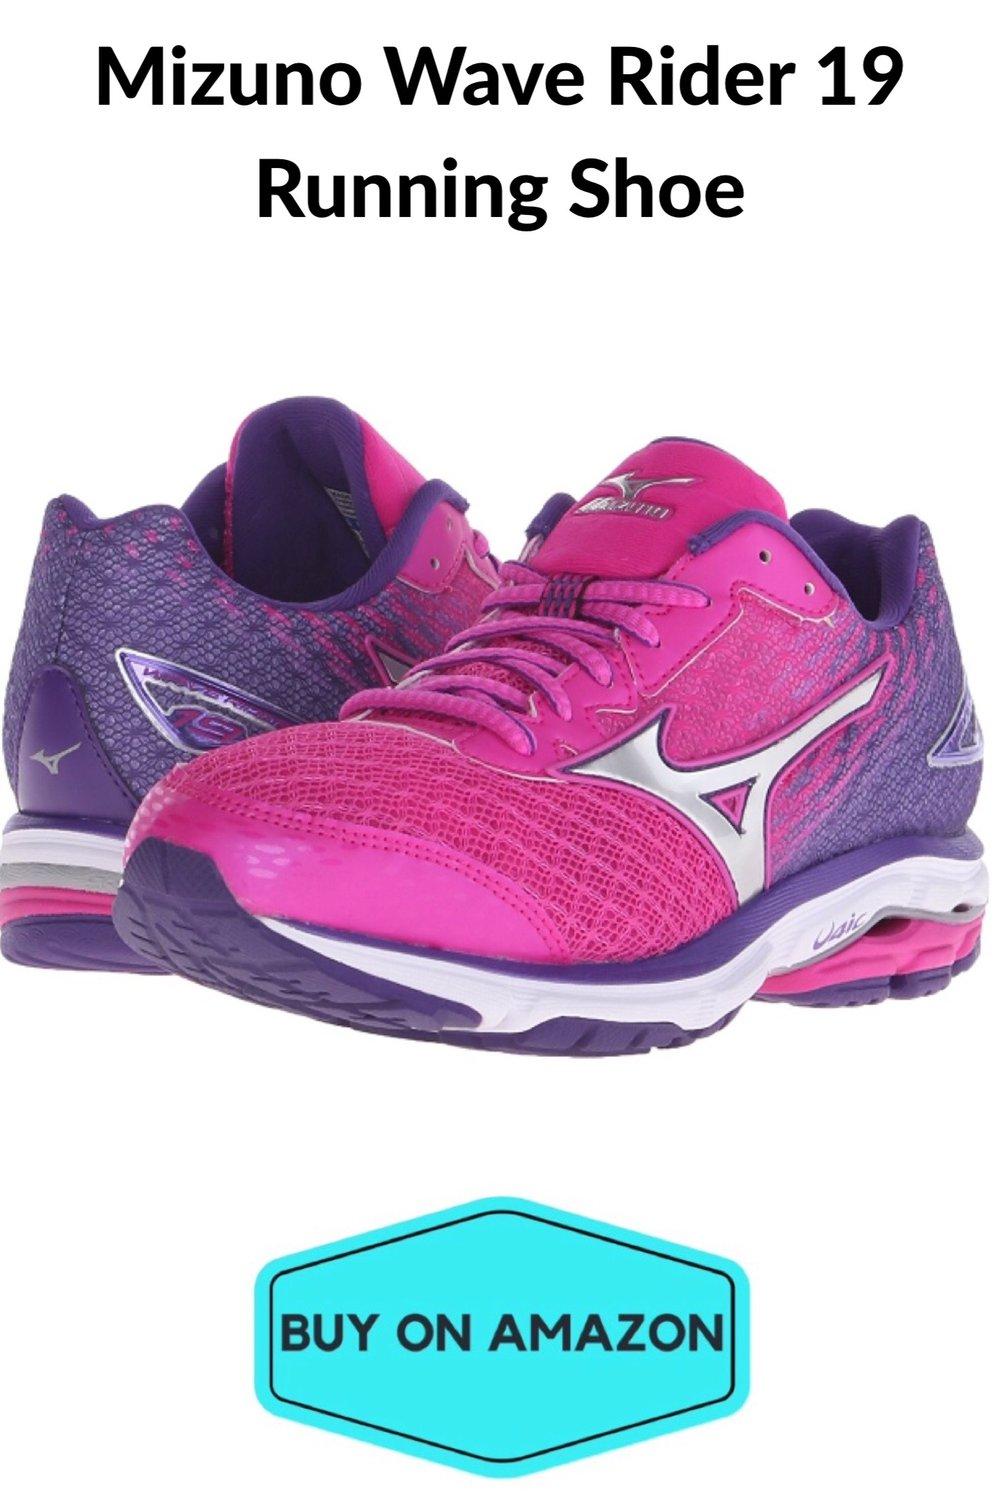 Minuzo Wave Rider 19 Women's Running Shoe